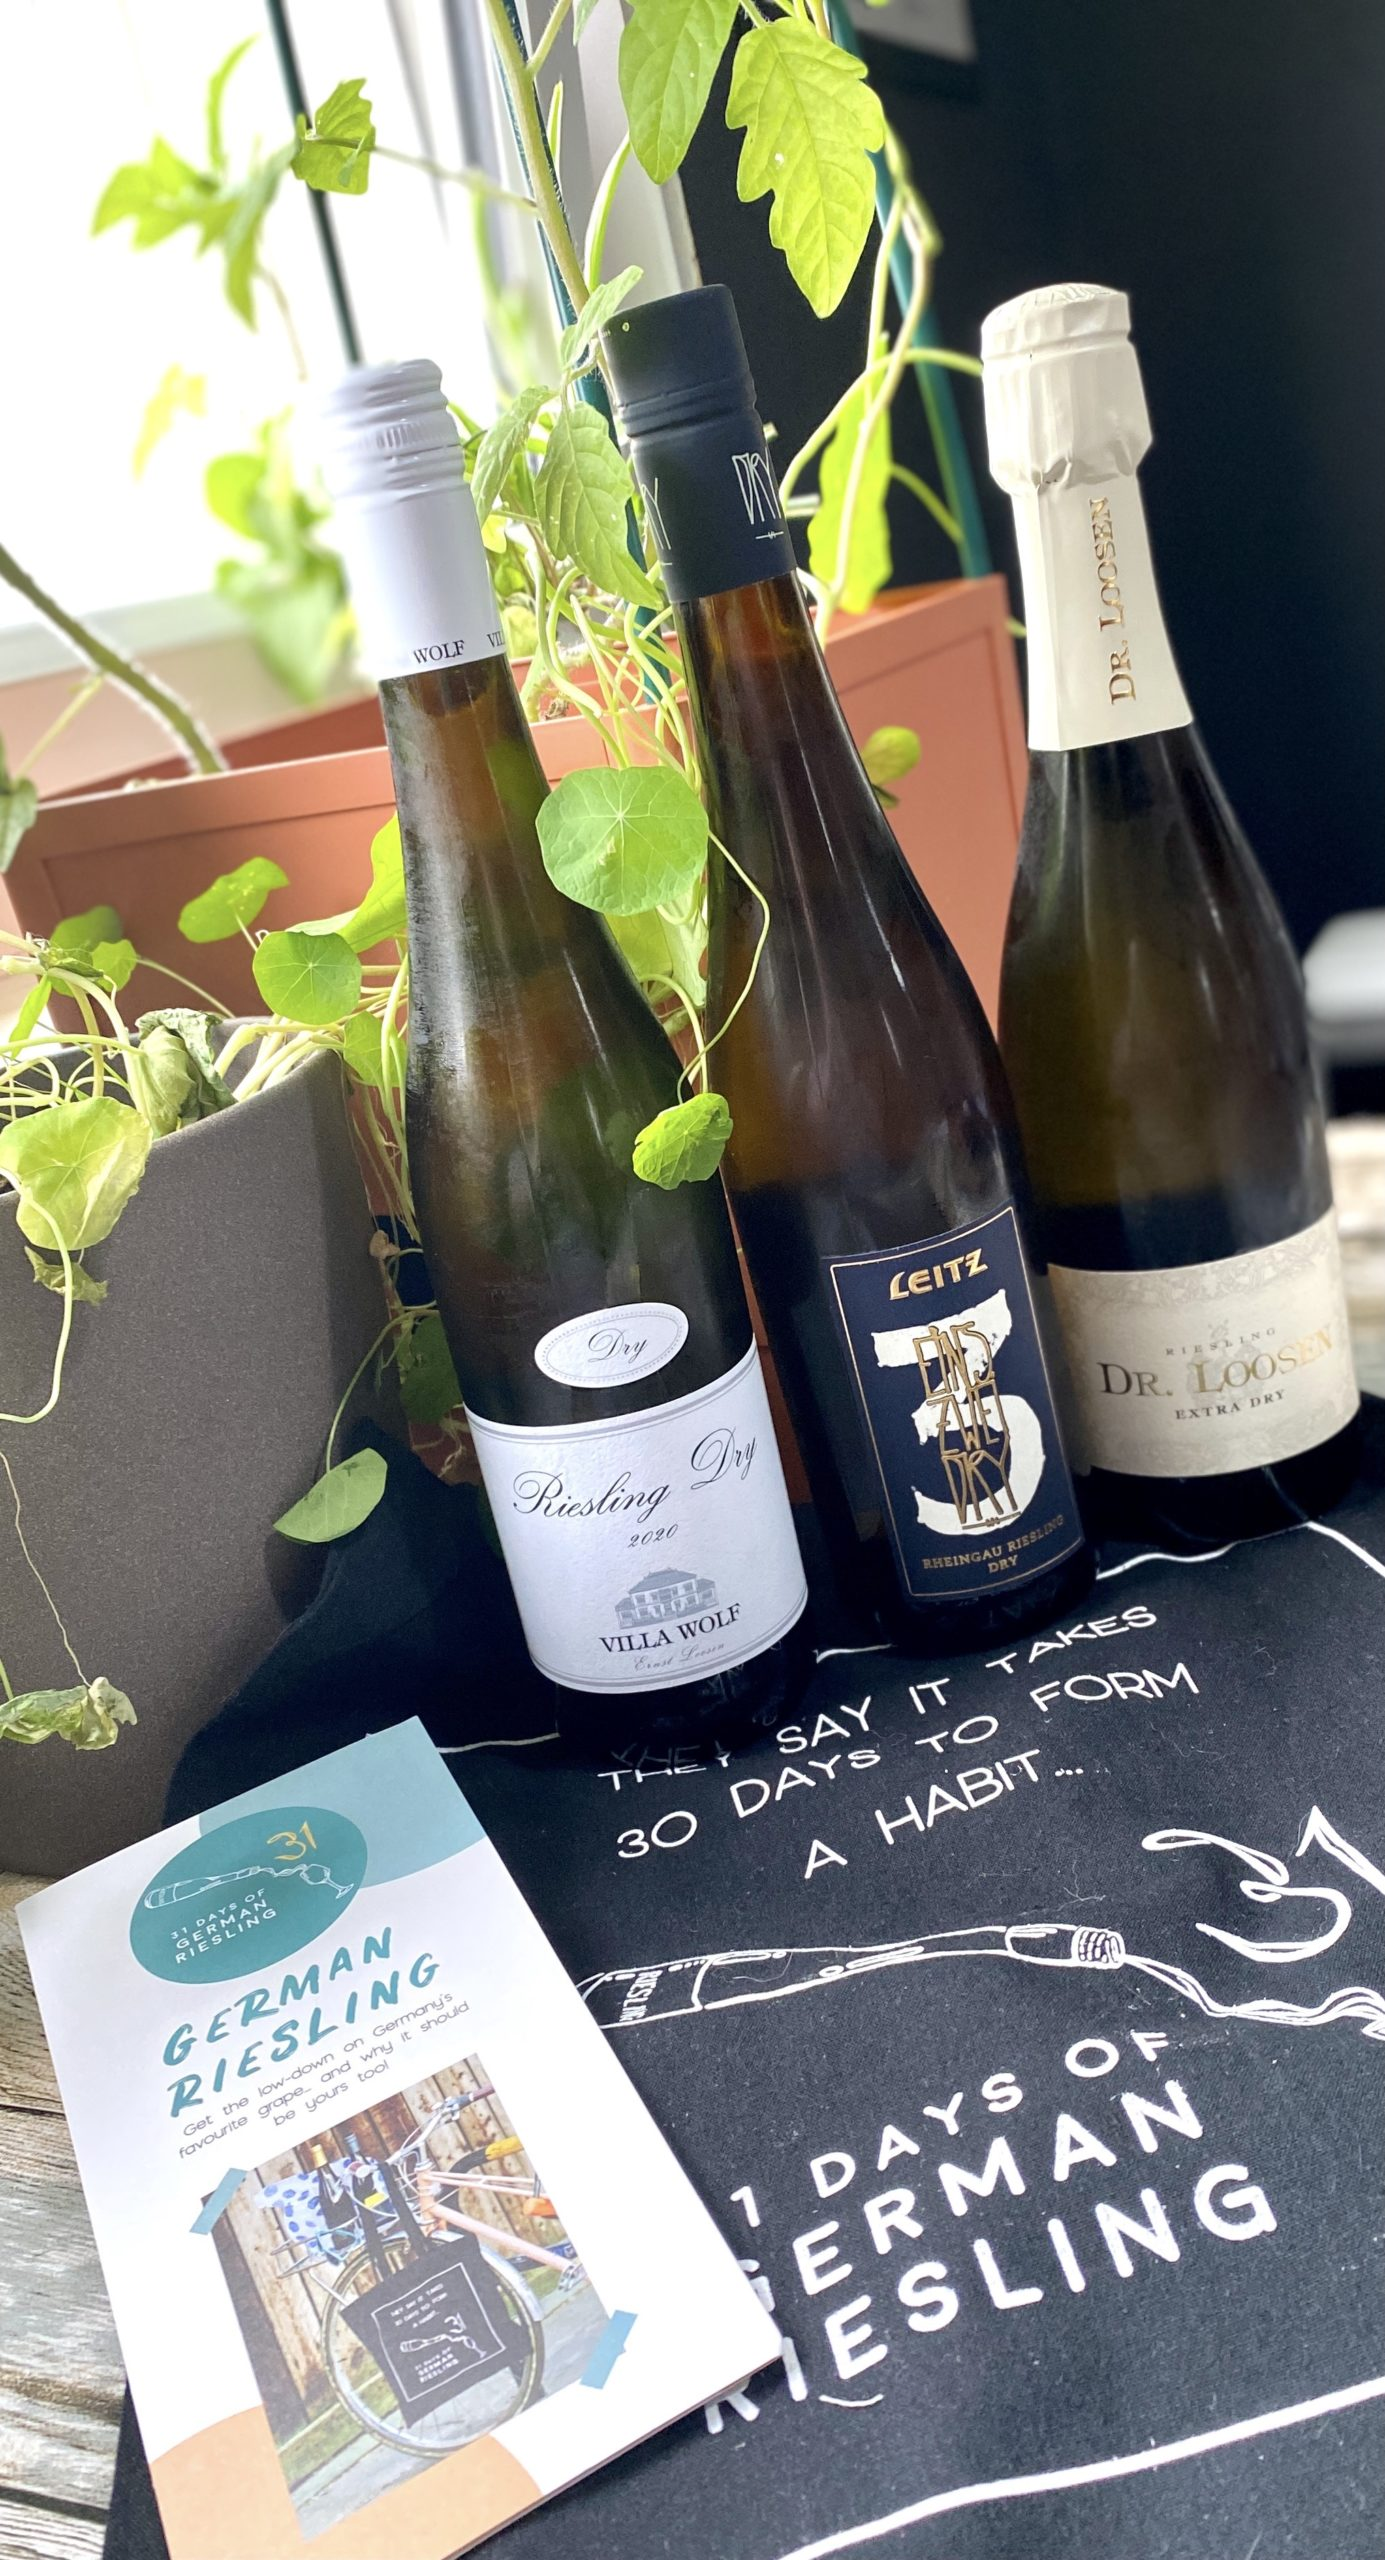 31 days of german riesling wine events scotland luvians tasting